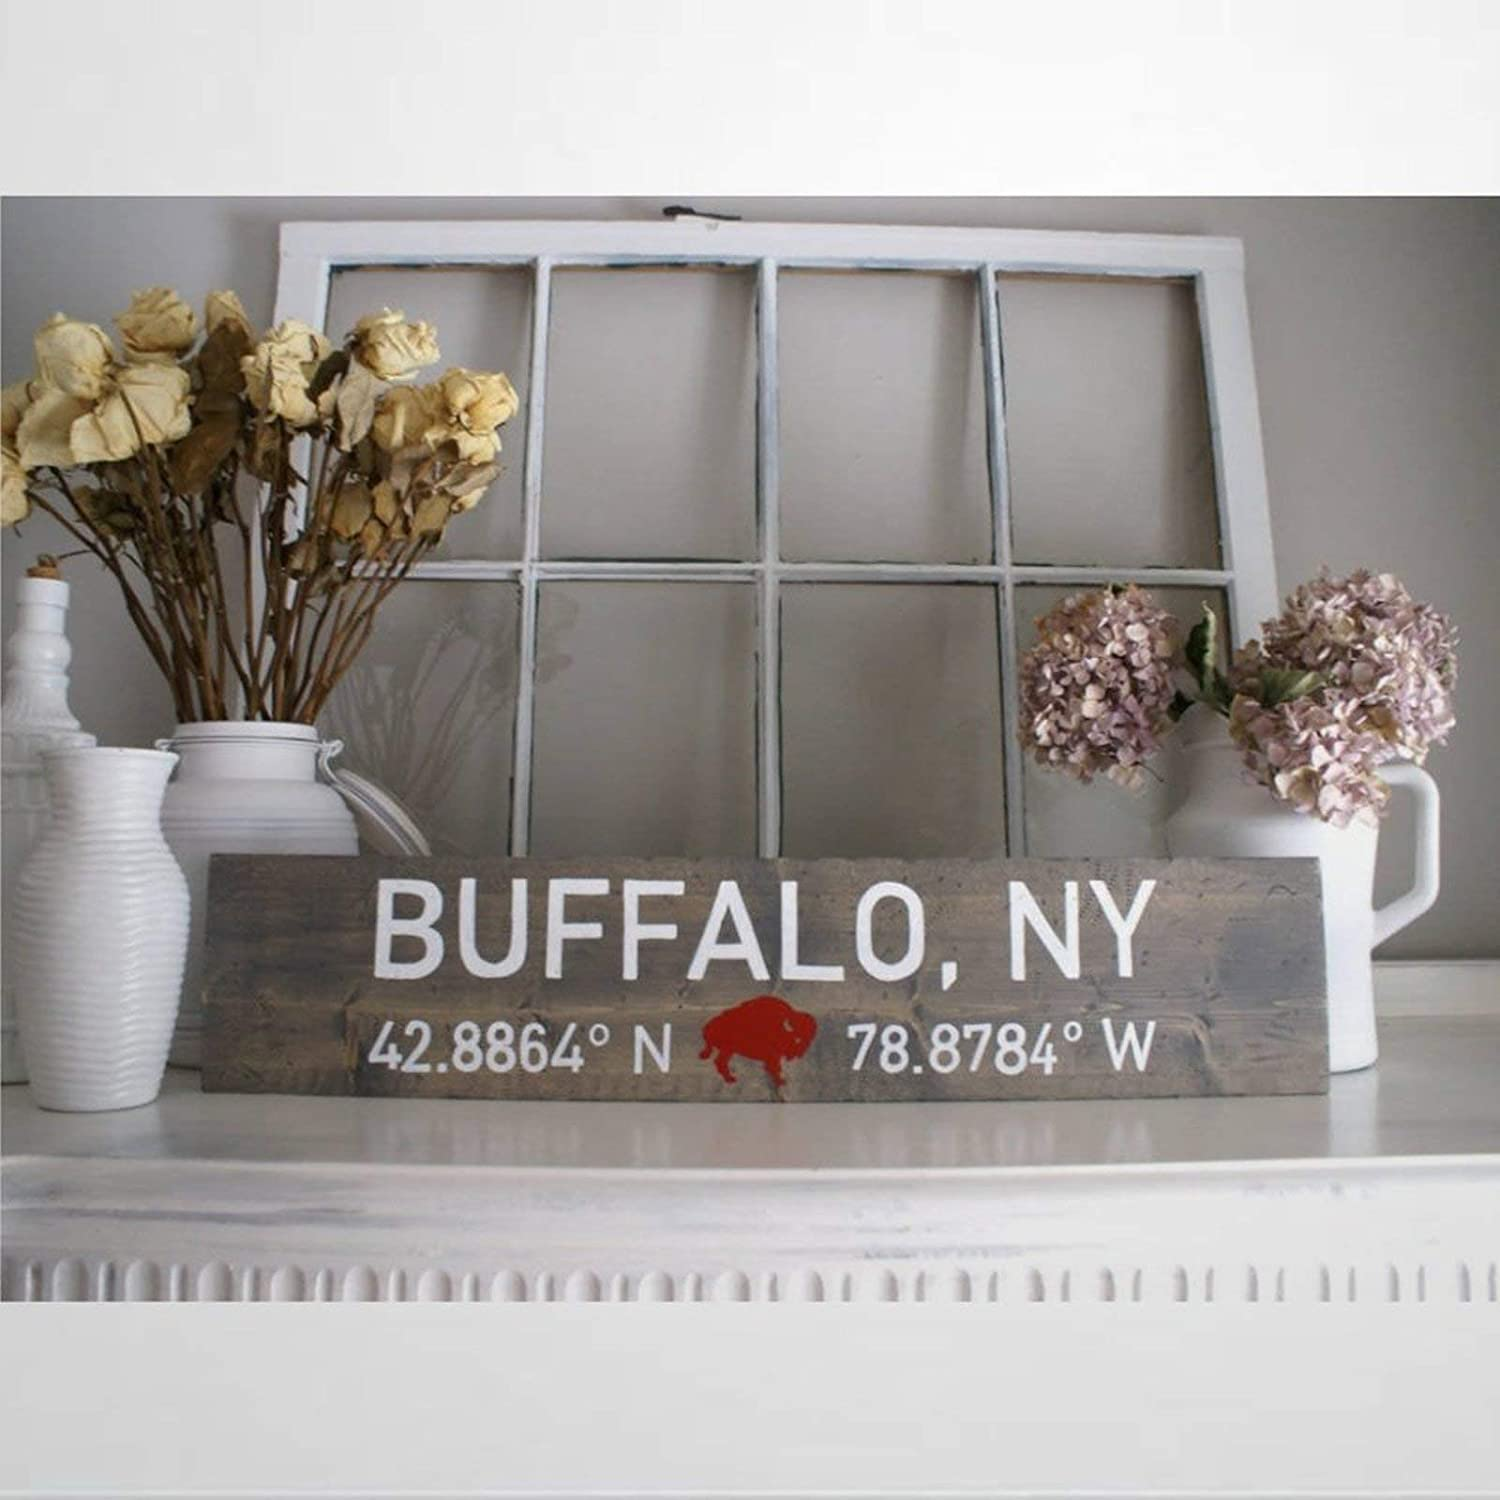 ArogGeld Buffalo NY with Coordinates Wood Sign,Wooden Wall Hanging Art,Inspirational Farmhouse Wall Plaque,Rustic Home Decor for Living Room,Nursery,Bedroom,Porch,Gallery Wall